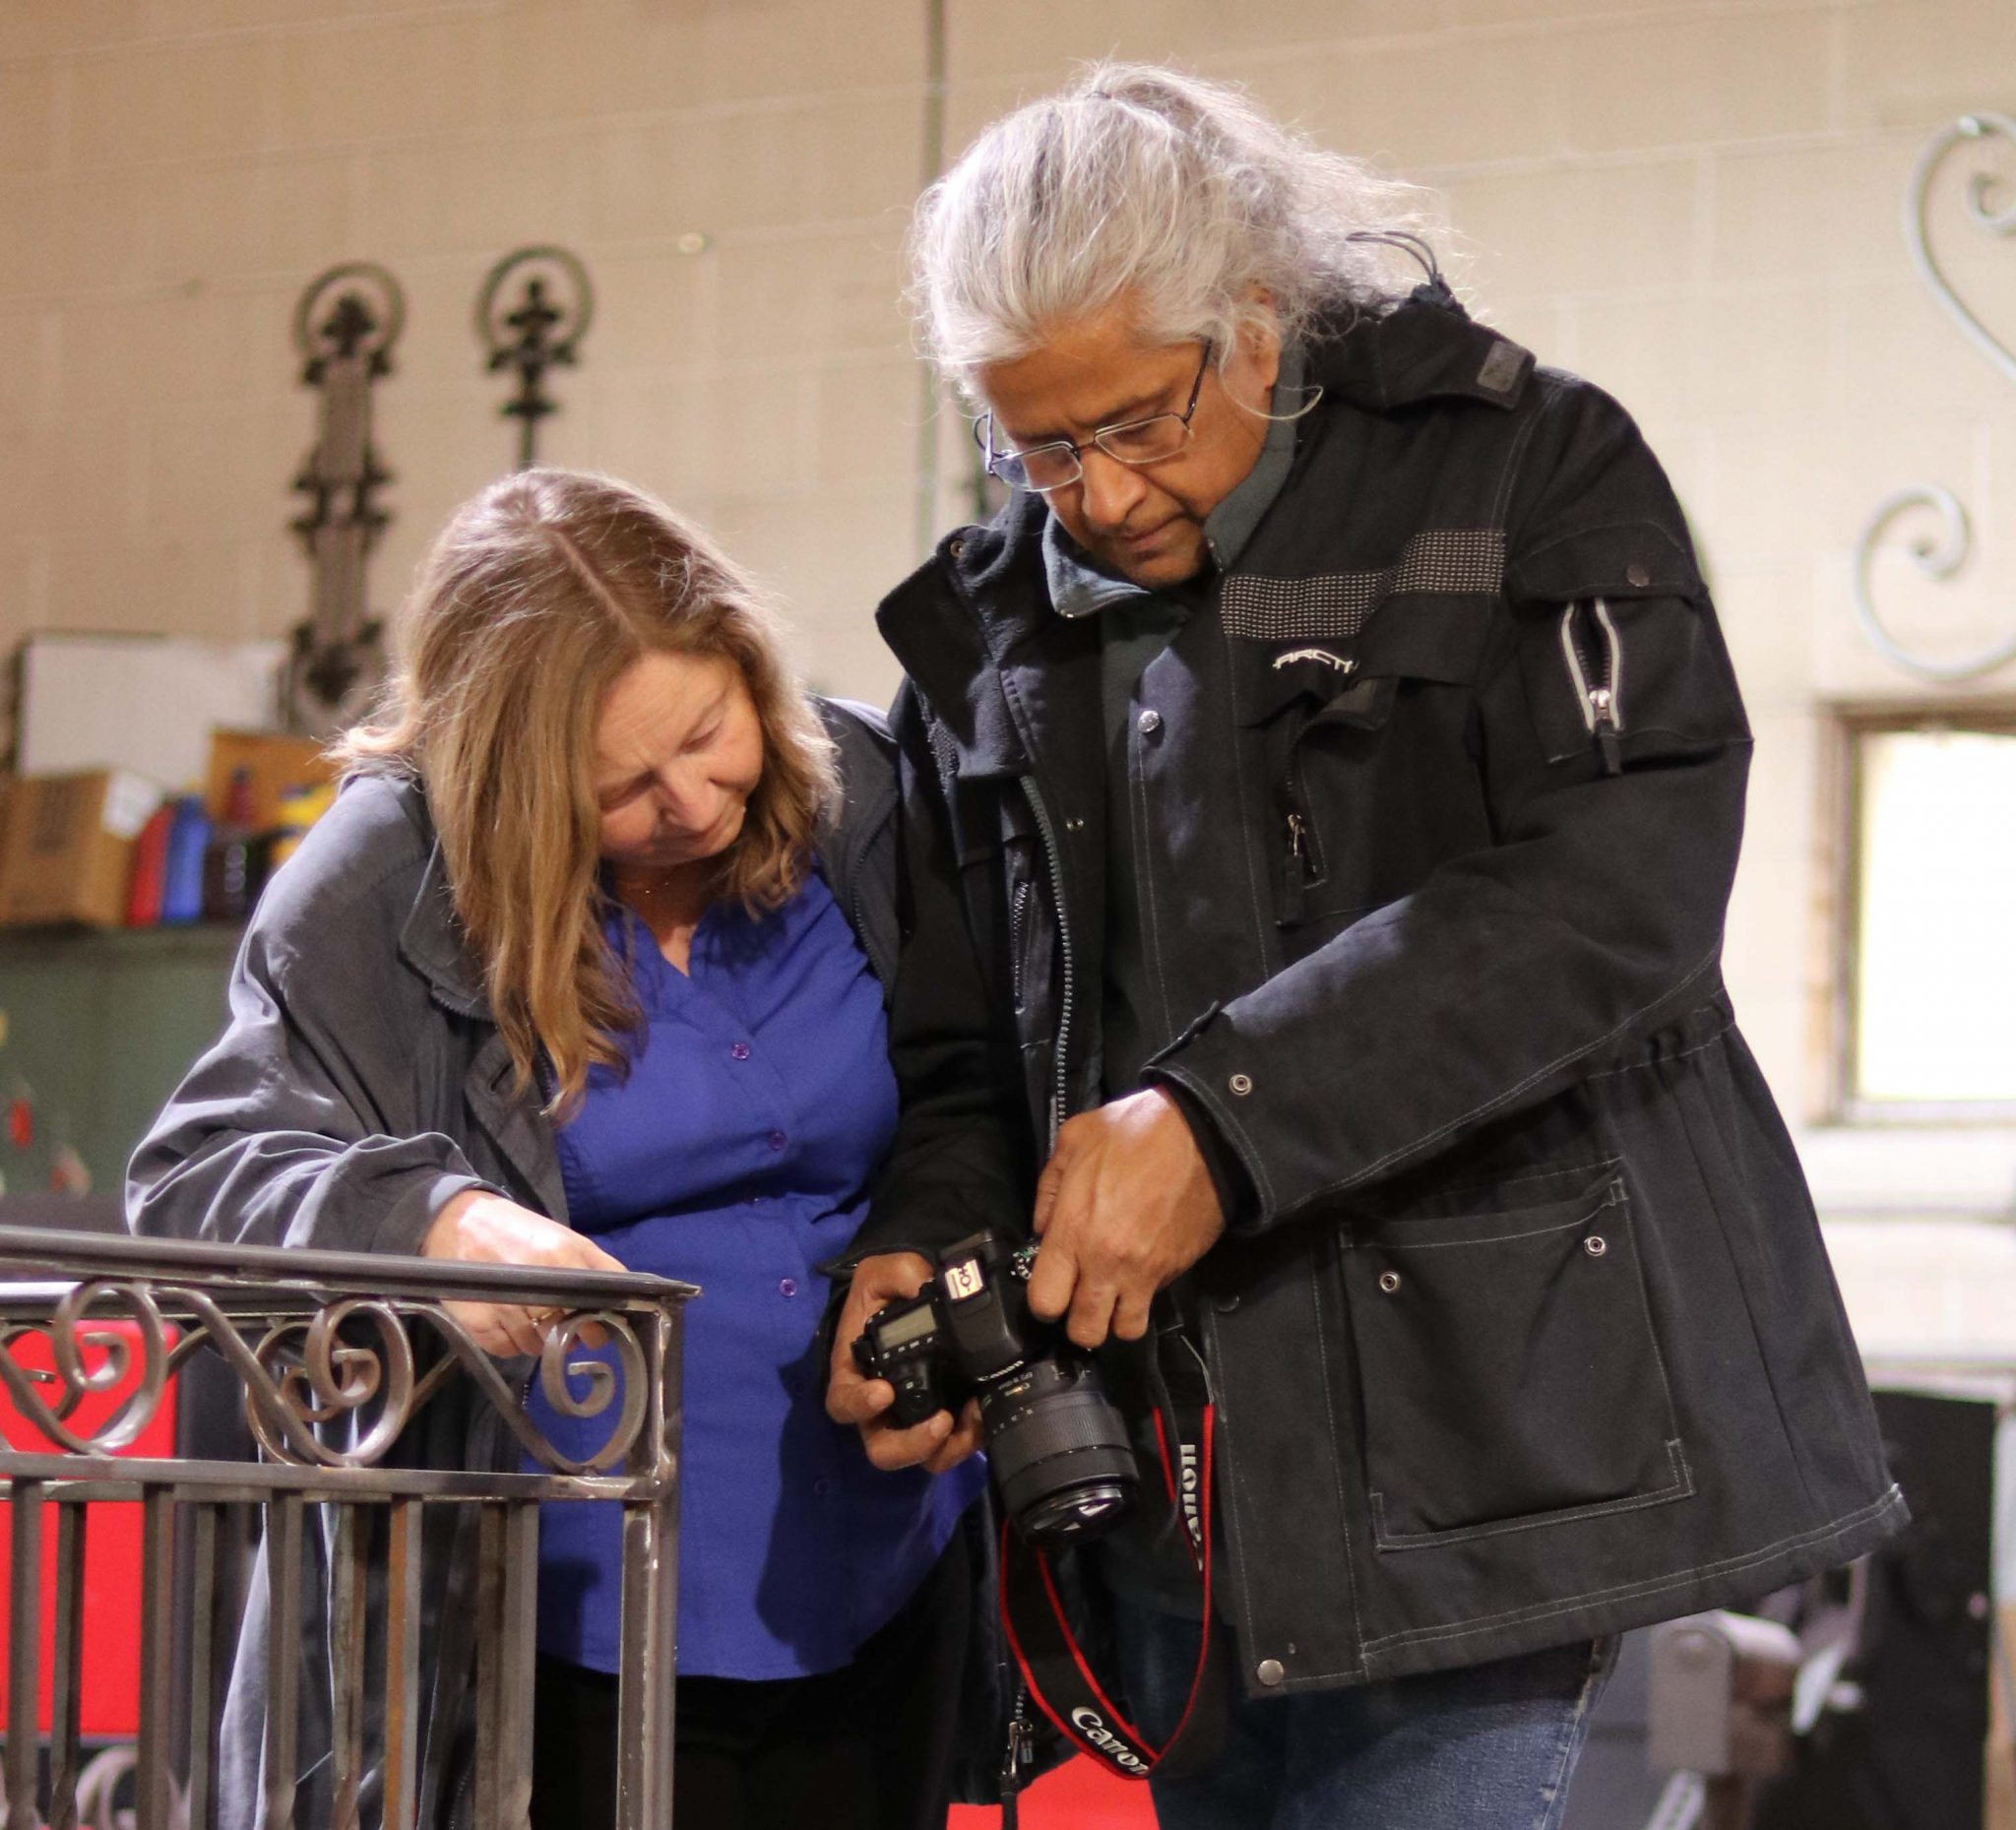 Guha Shankar assists Beth Bevars with her camera